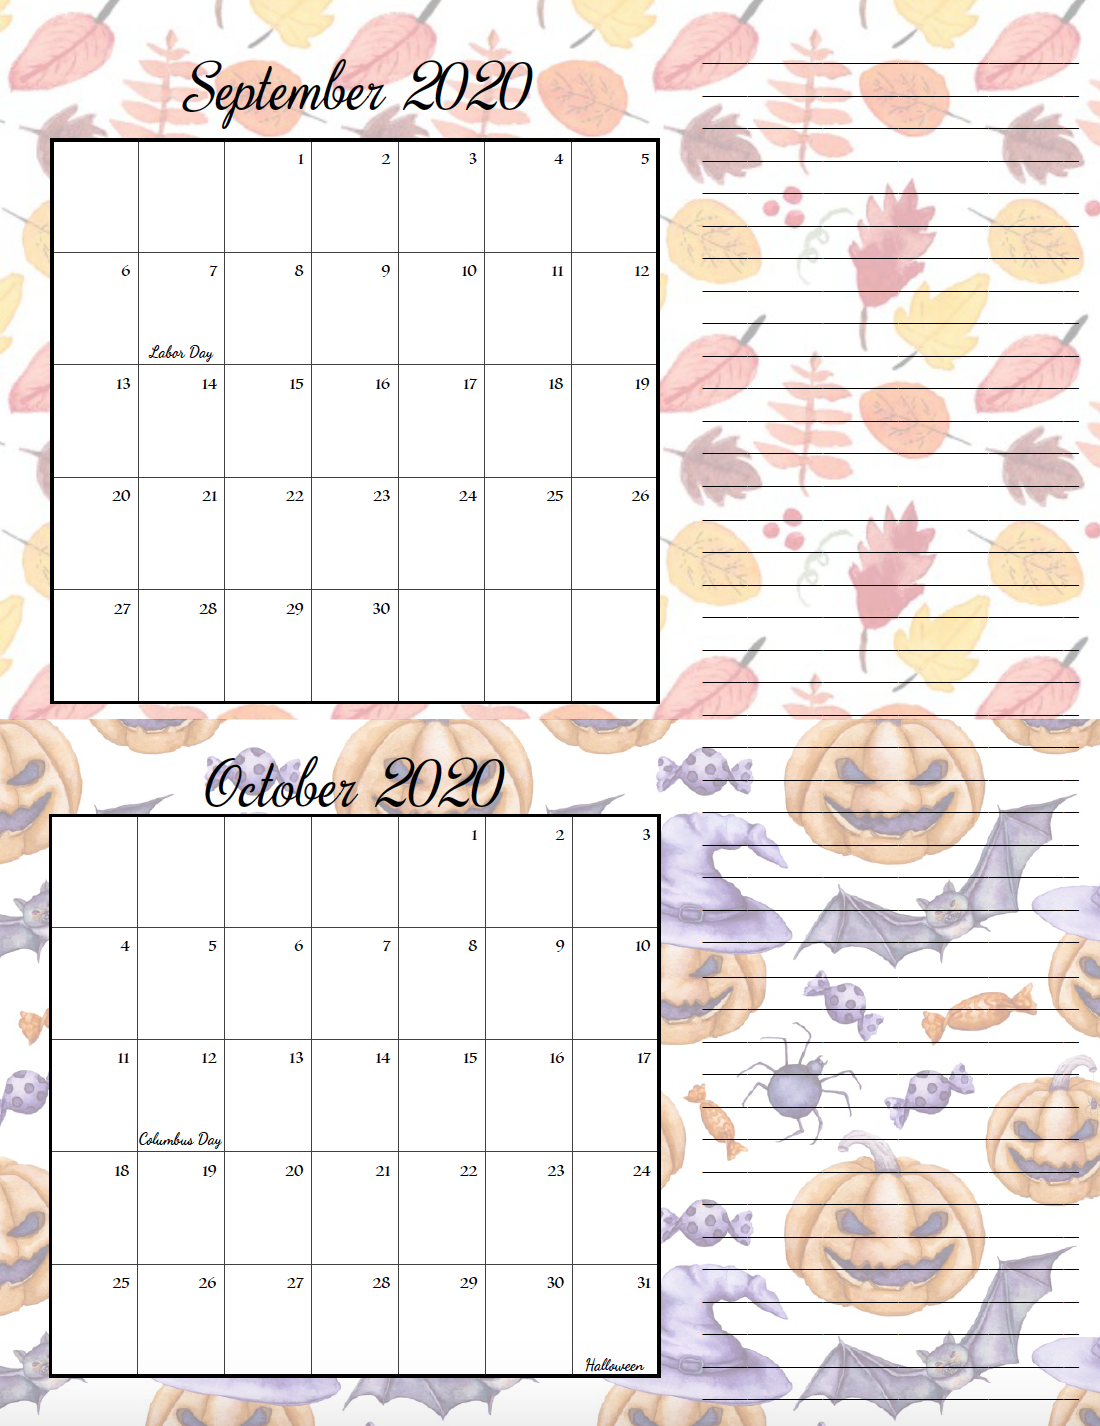 Holiday theme September/October bimonthly calendar.